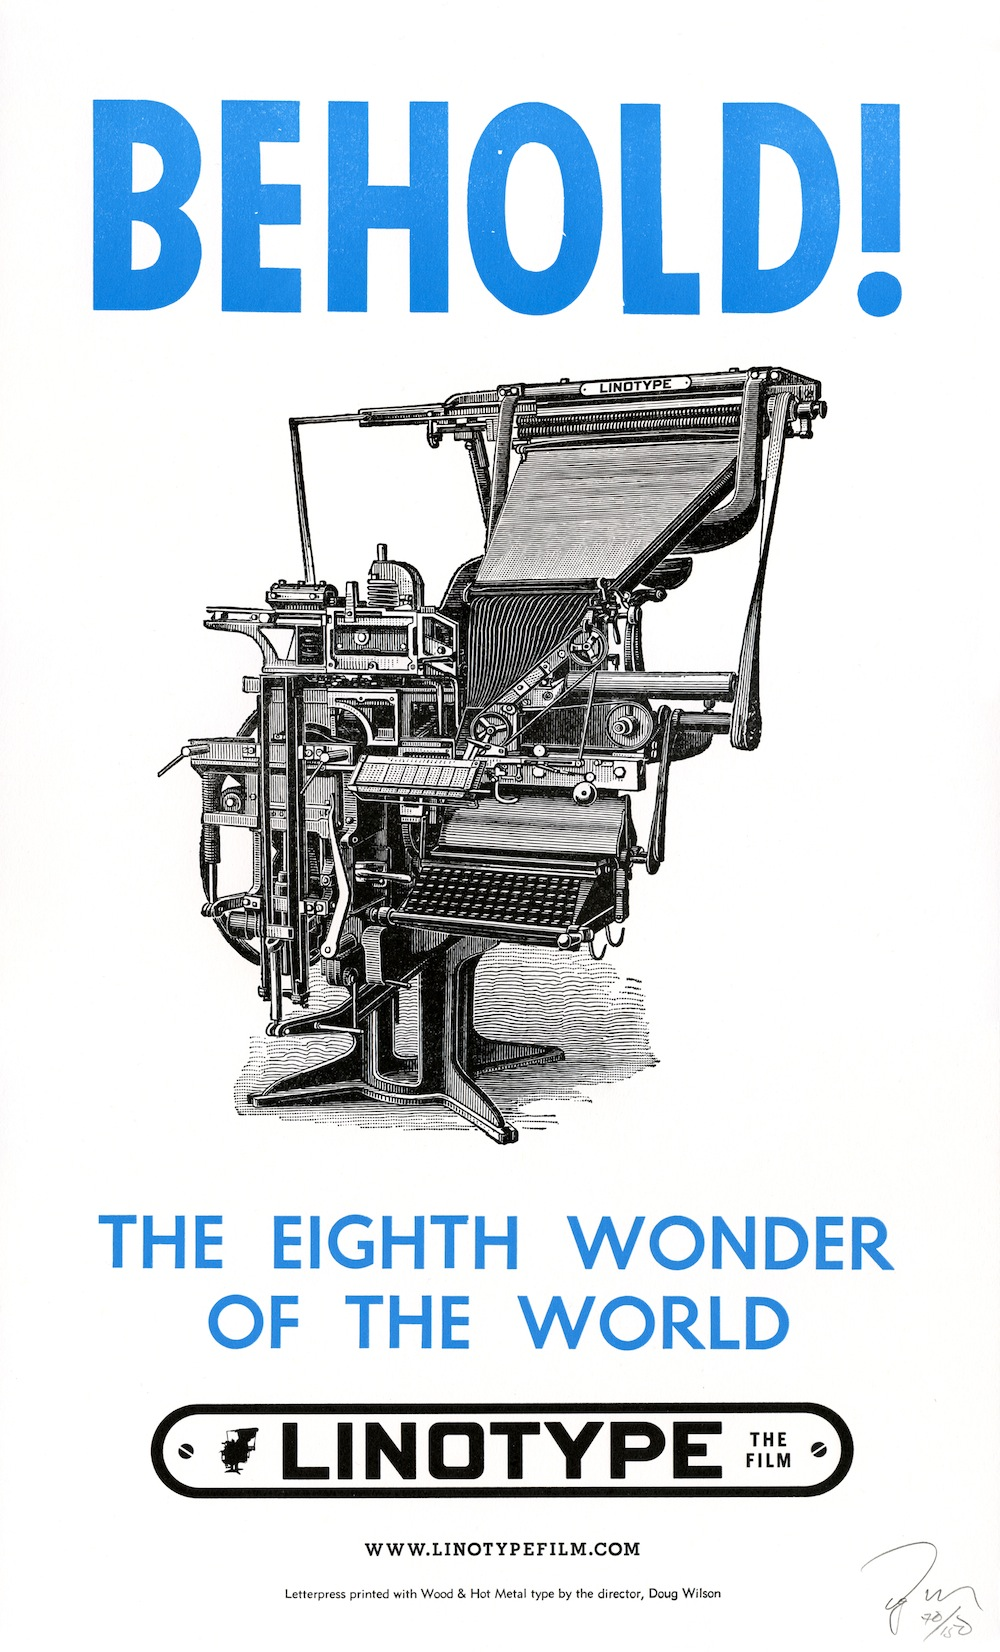 FREE Screening of Linotype: The Film